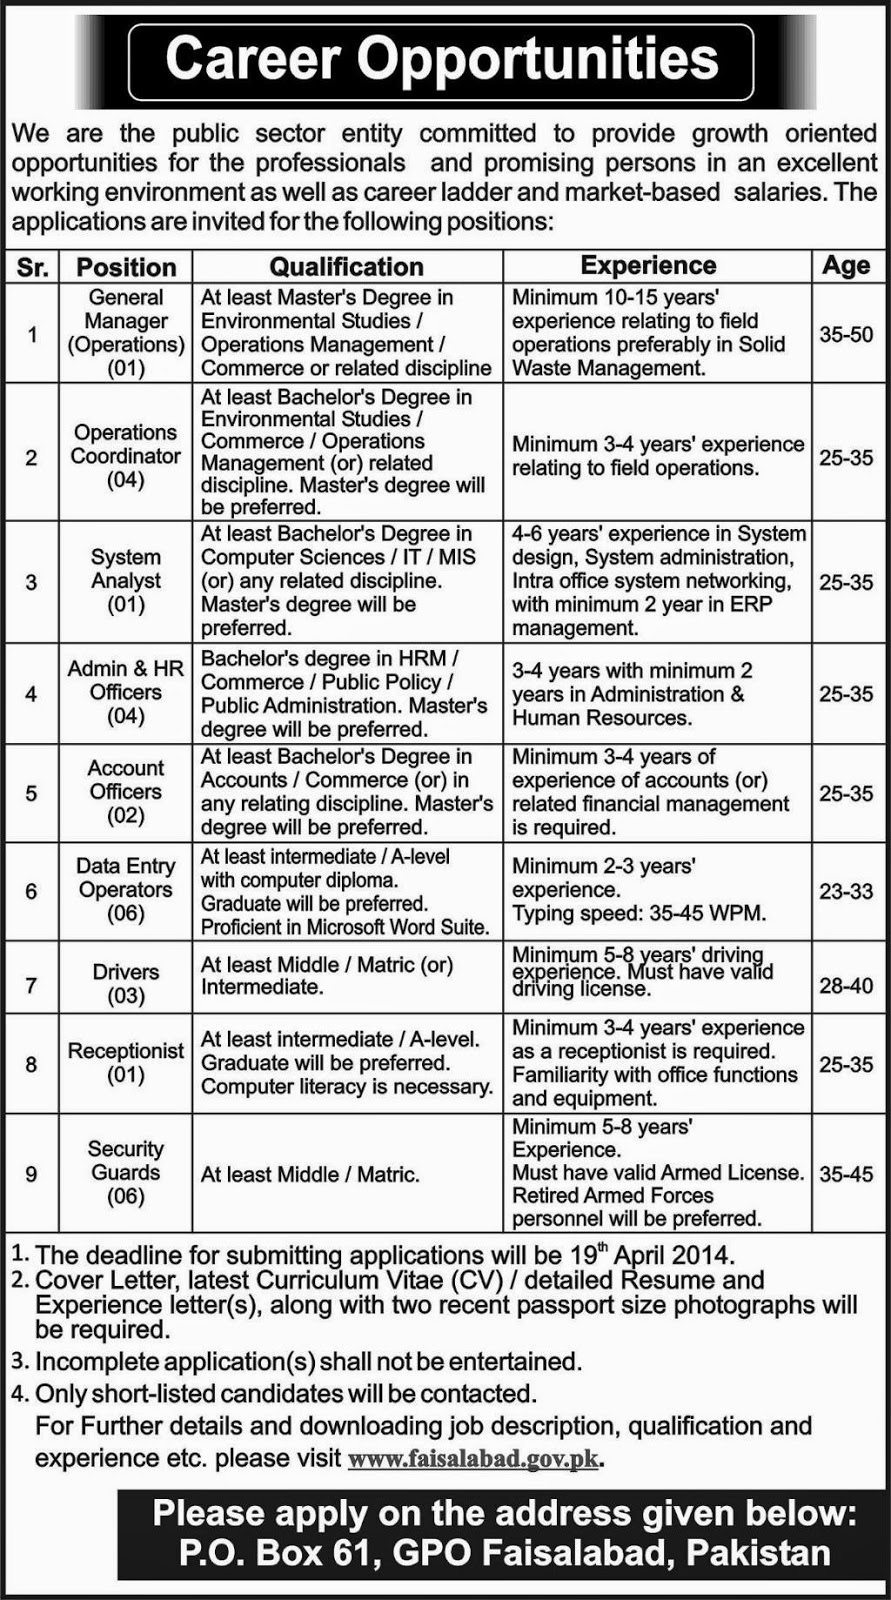 FIND    JOBS   IN   PAKISTAN   GENERAL   MANAGER   SYSTEM   ANALYST    JOBS  IN   PAKISTAN   LATEST   JOB   IN  PAKISTAN